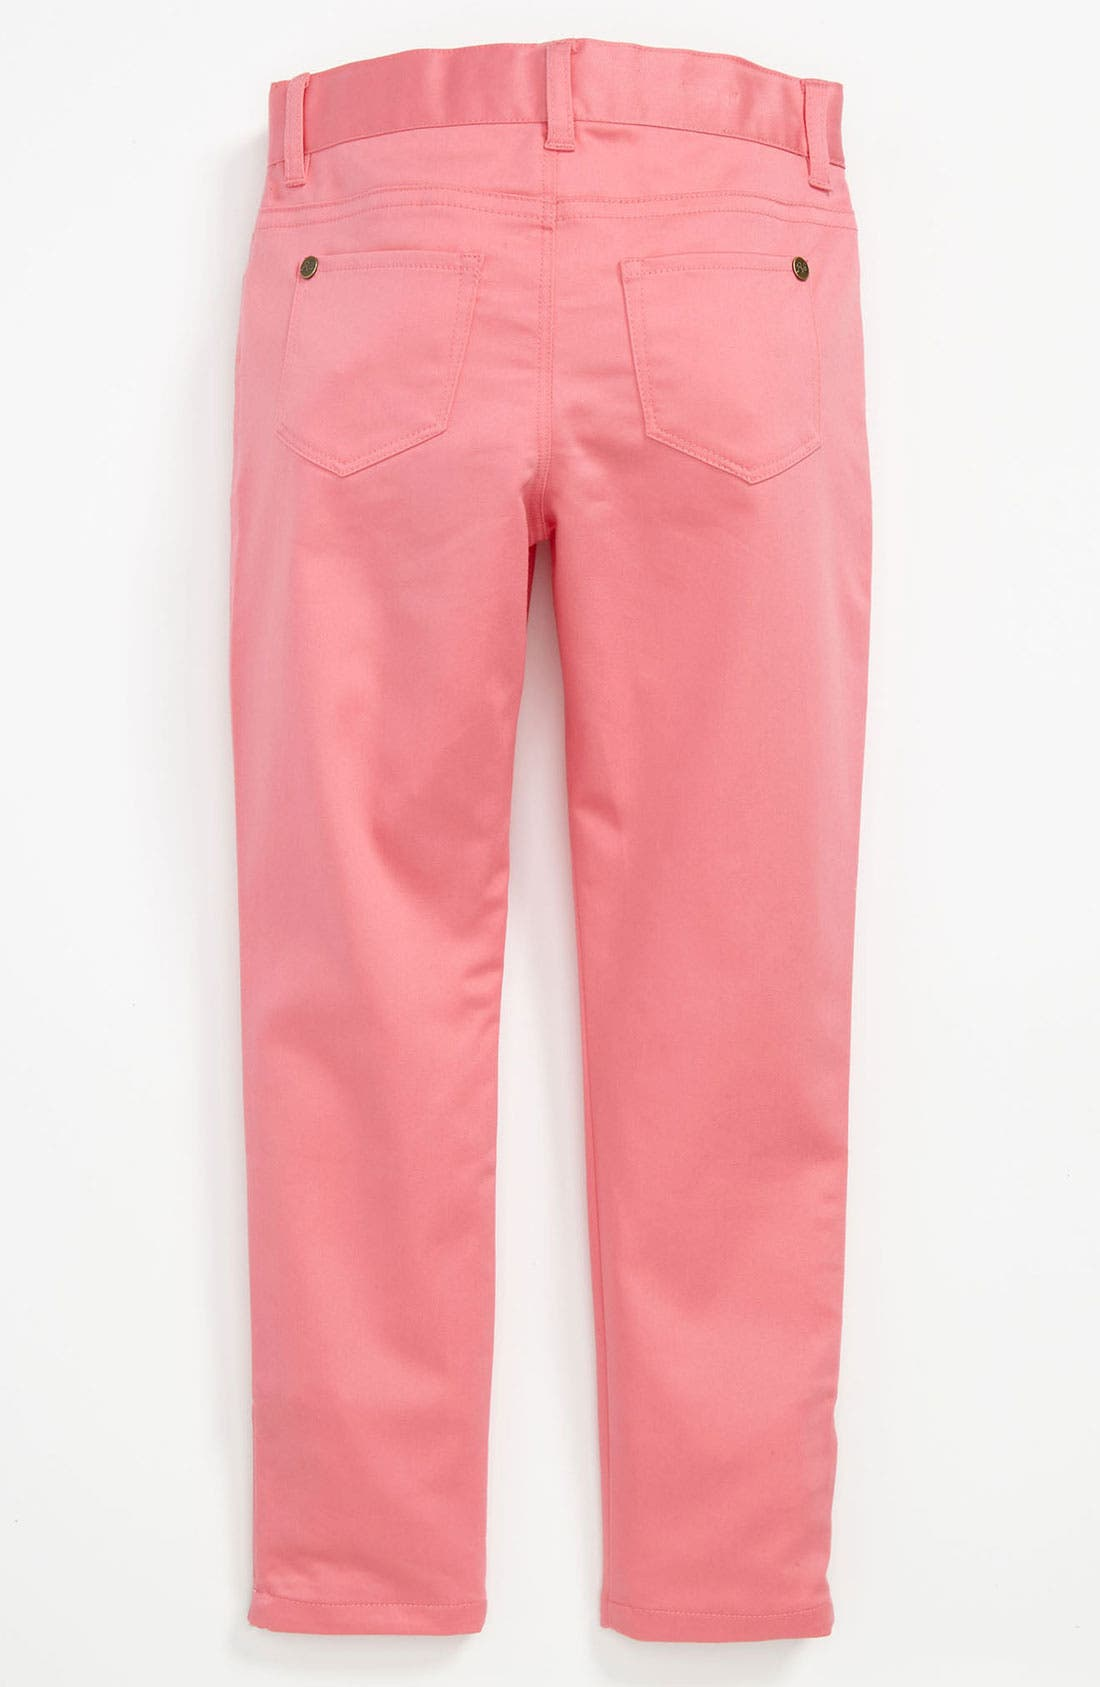 Main Image - Ruby & Bloom 'Ana' Ankle Pants (Little Girls & Big Girls)